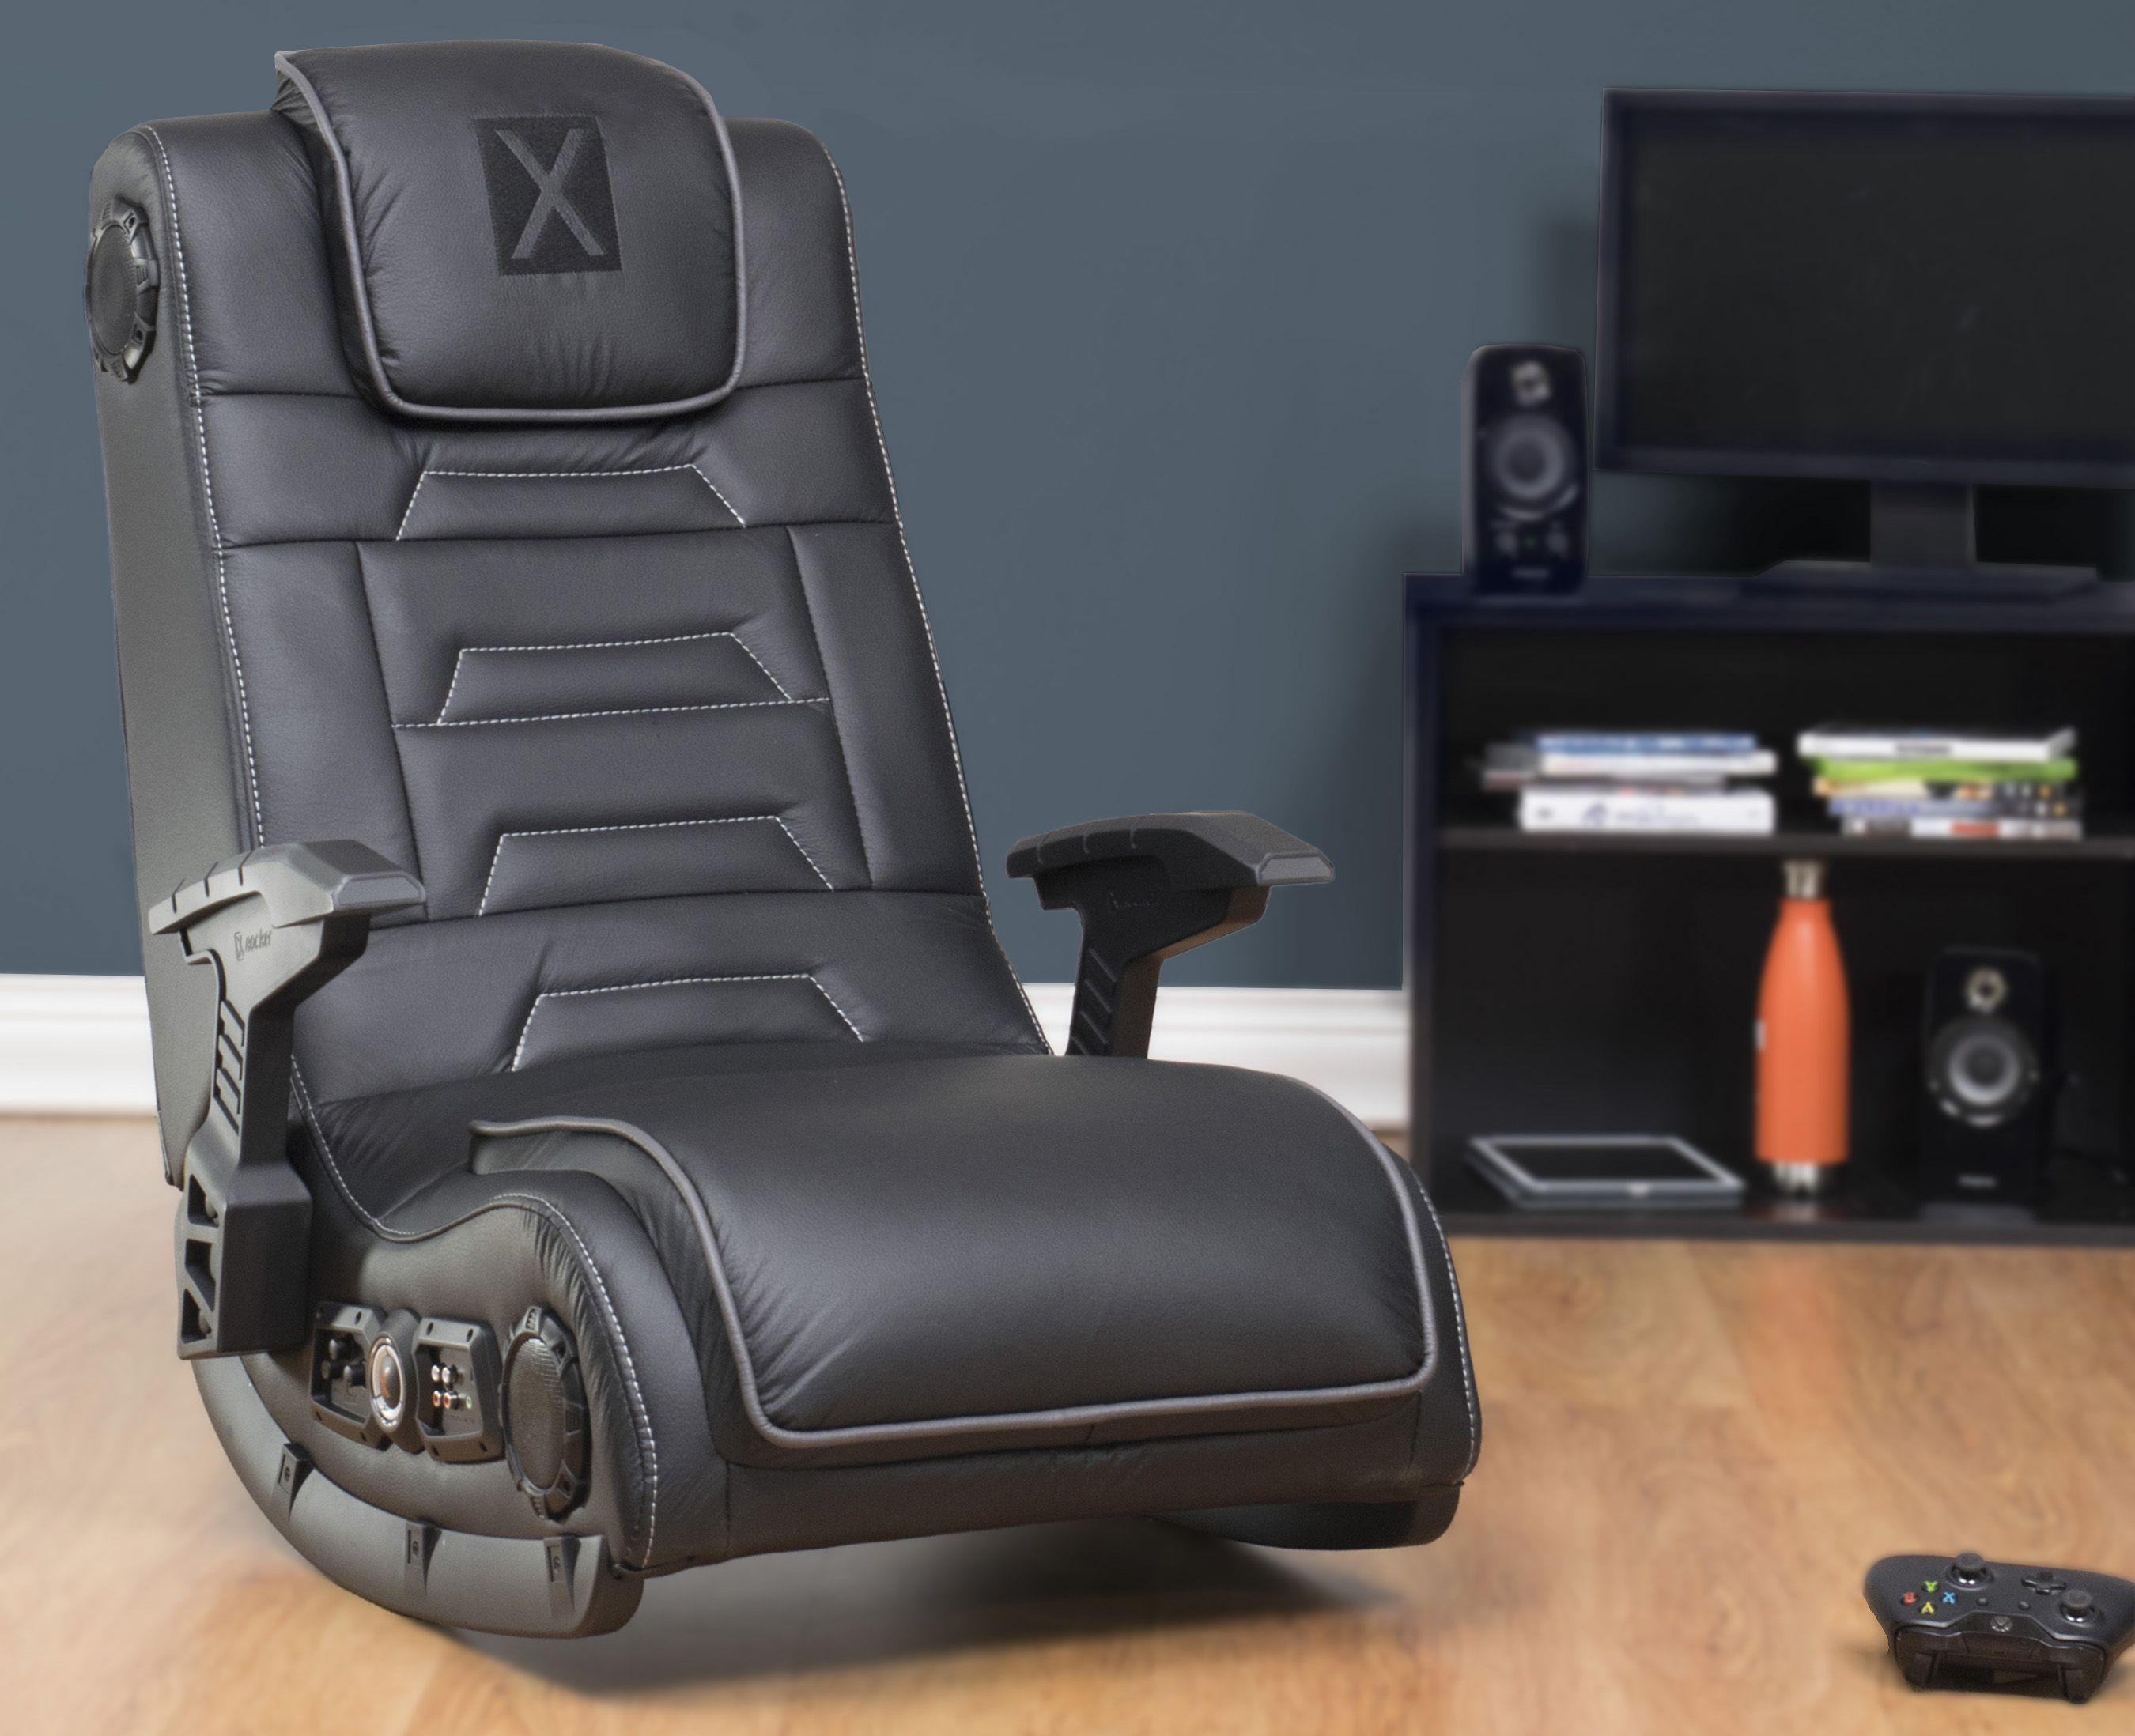 Home Gaming chair, Game room, Dining chair slipcovers